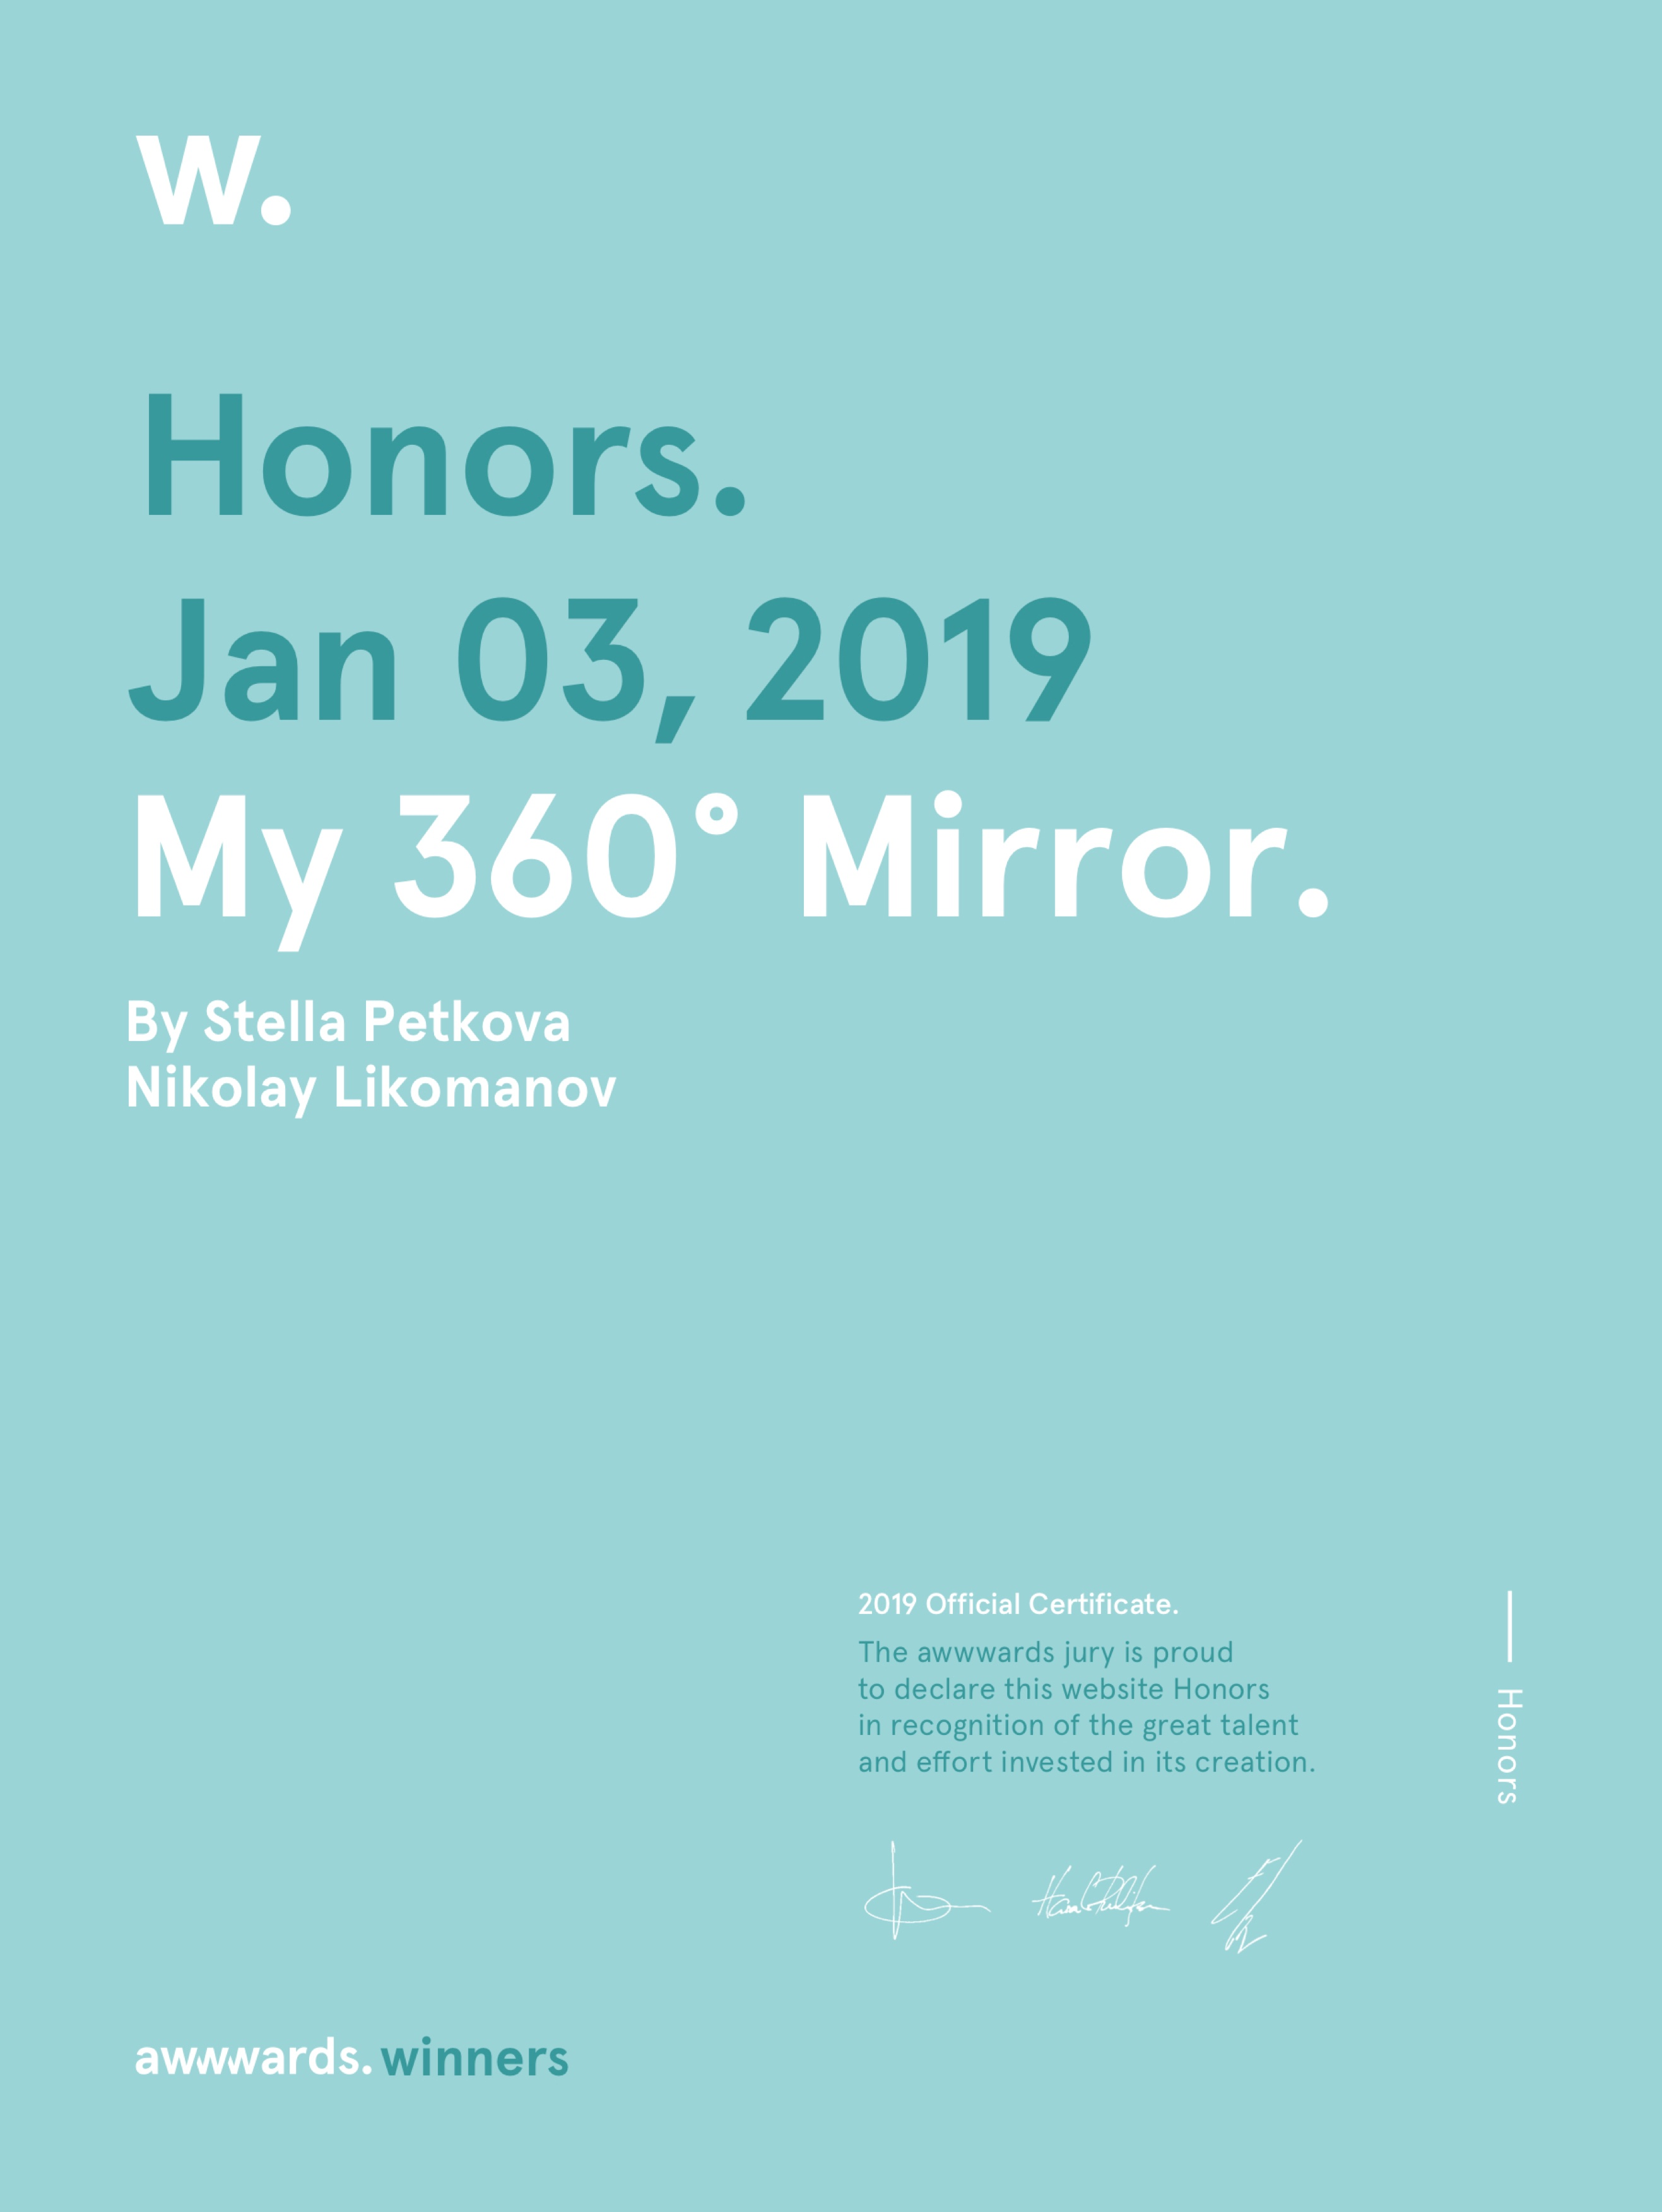 Awwwards Honors Certificate - My 360 Mirror